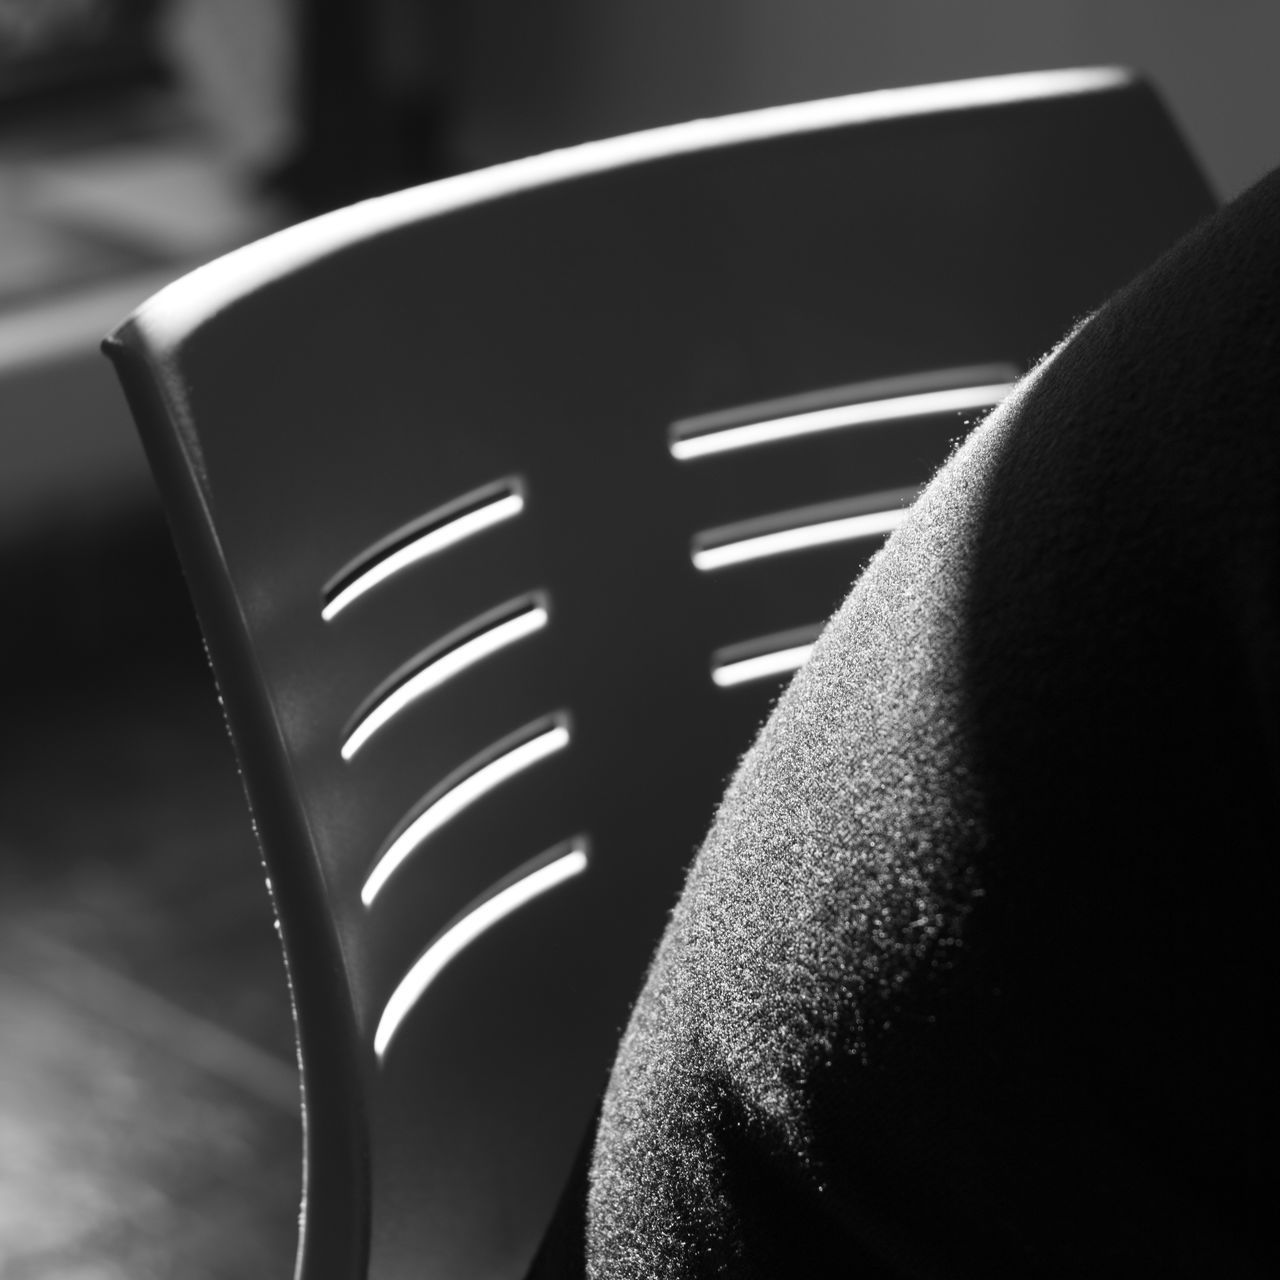 HIGH ANGLE VIEW OF PERSON IN CHAIR